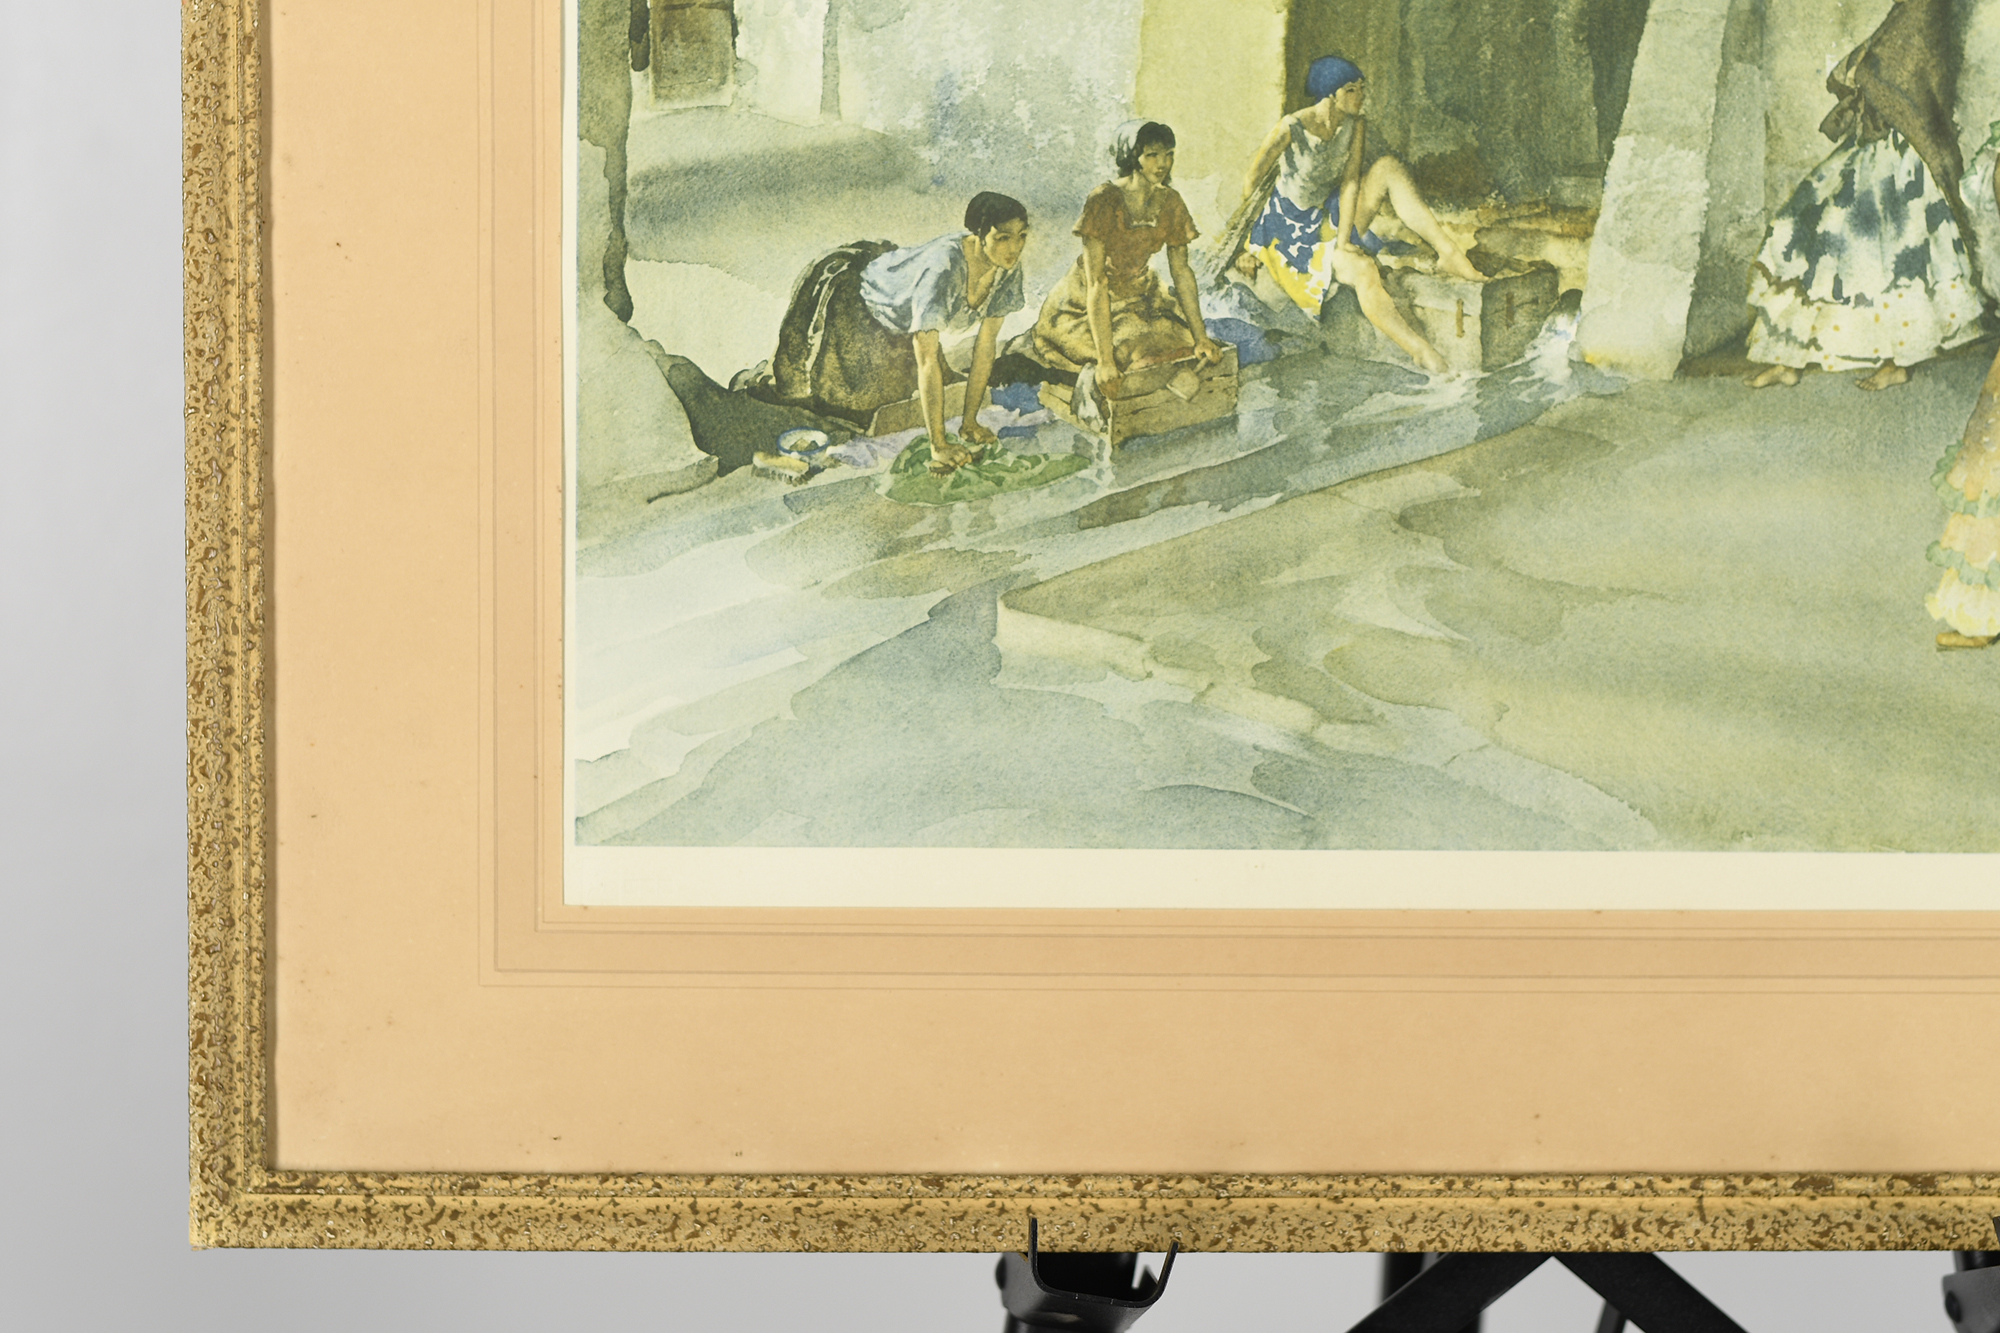 """Signed Limited Edition by Sir William Russell Flint """"Unwelcome Observers"""" - Image 4 of 8"""